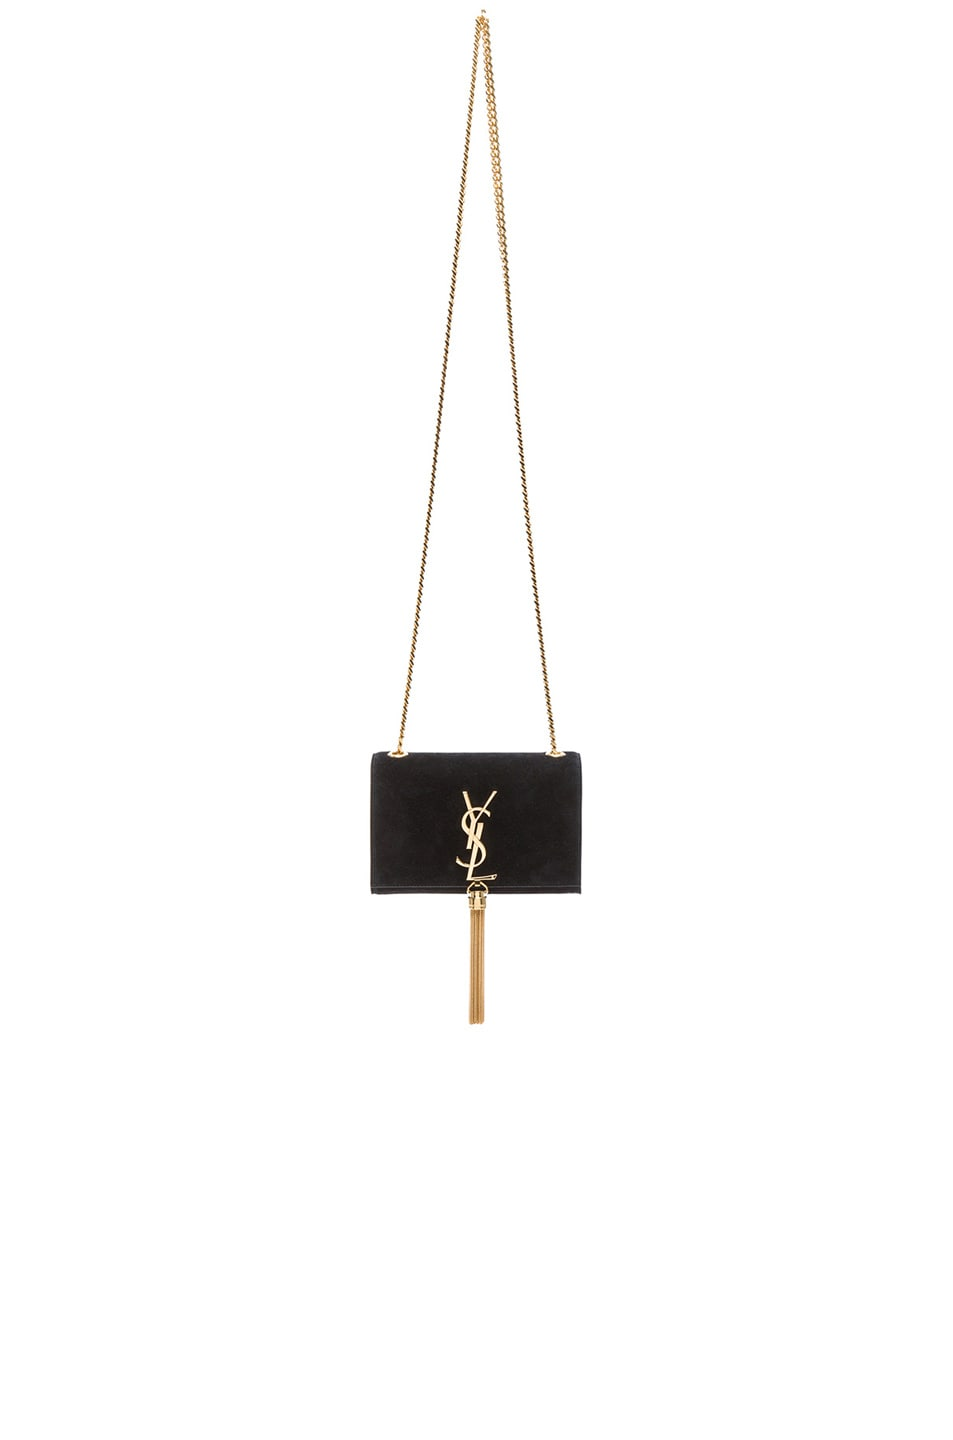 Image 1 of Saint Laurent Small Monogramme Suede Chain Tassel Bag in Black Suede